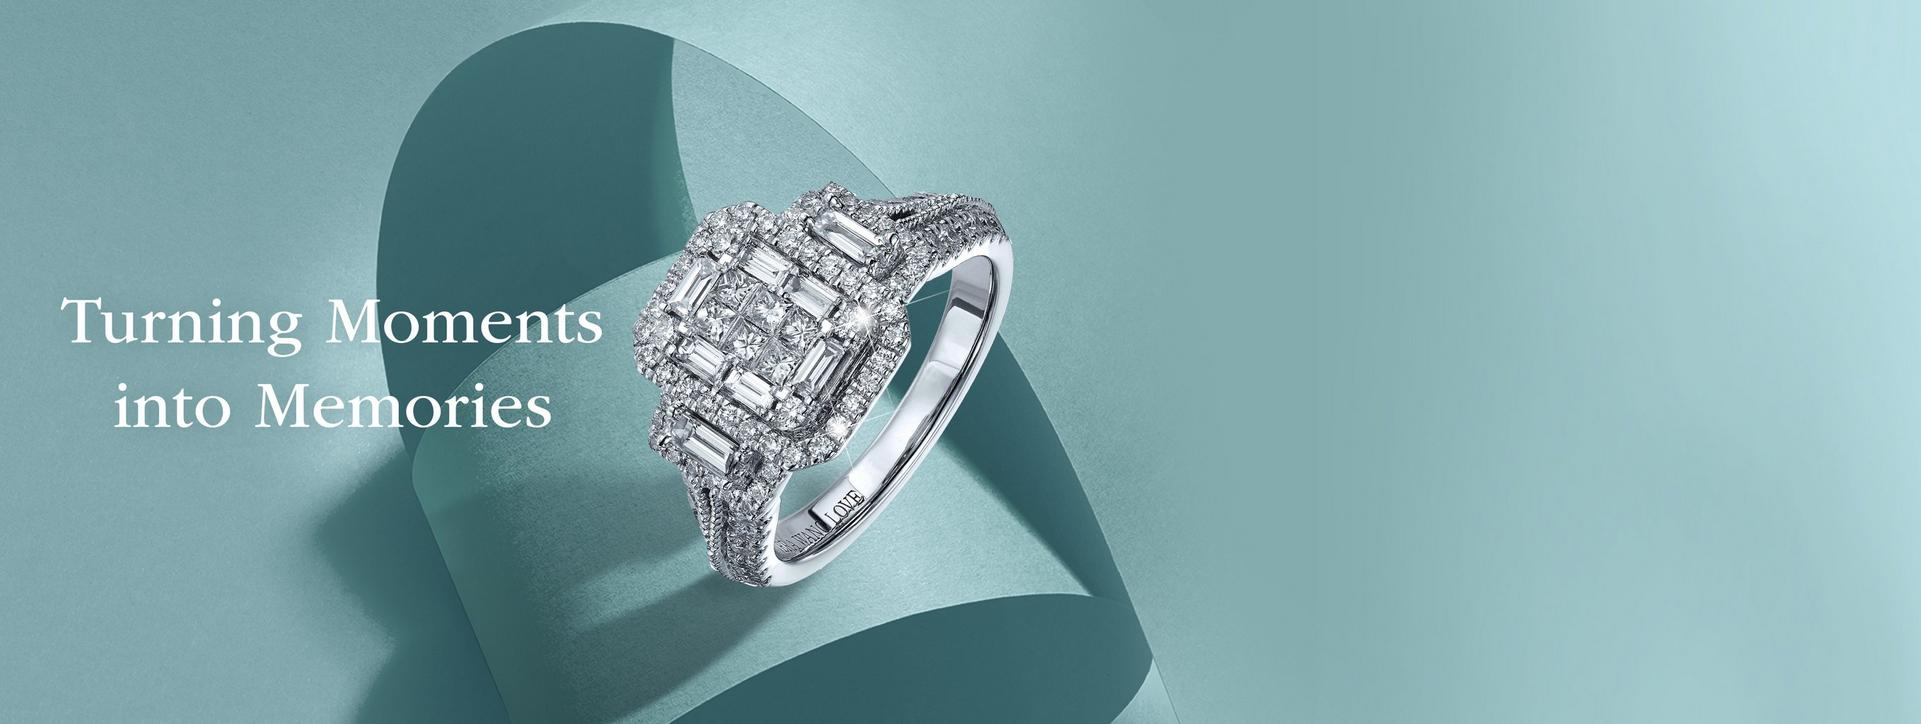 Up to 50% off diamond jewellery and engagement rings